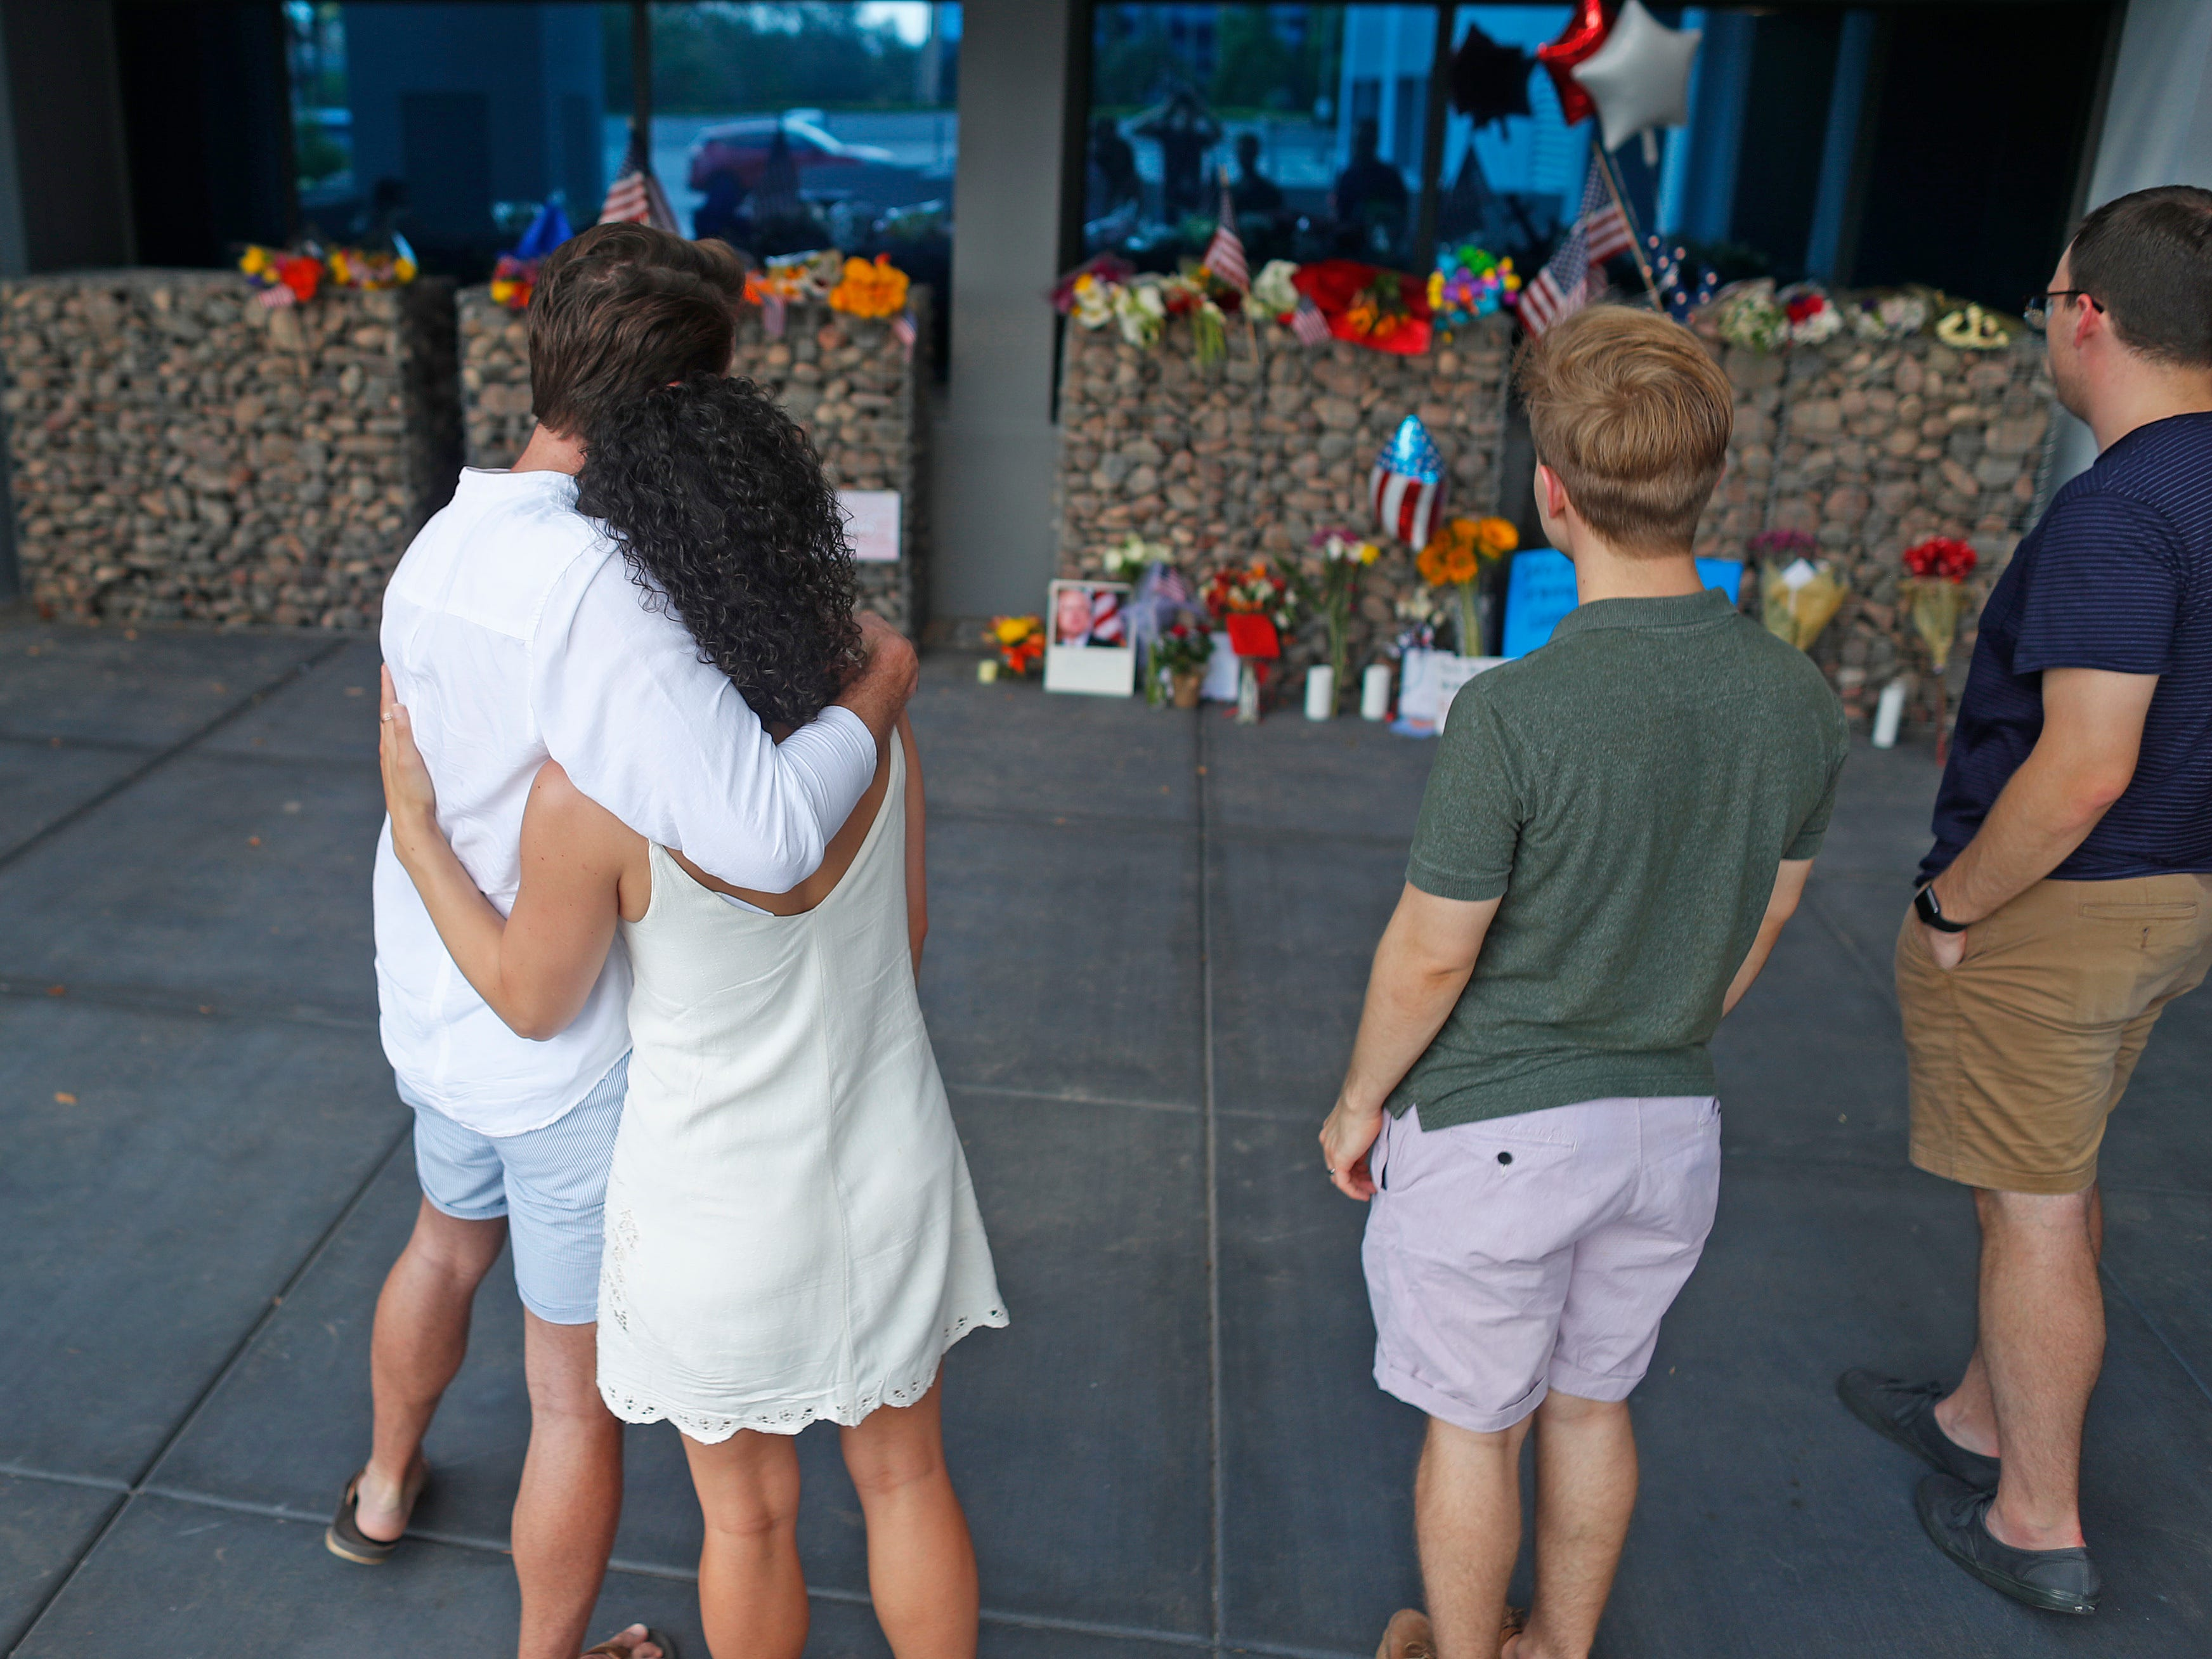 Spencer Crouder hugs Cass Possehl as they look at a memorial outside Sen. John McCain's offices in Phoenix on Aug. 26, 2018.